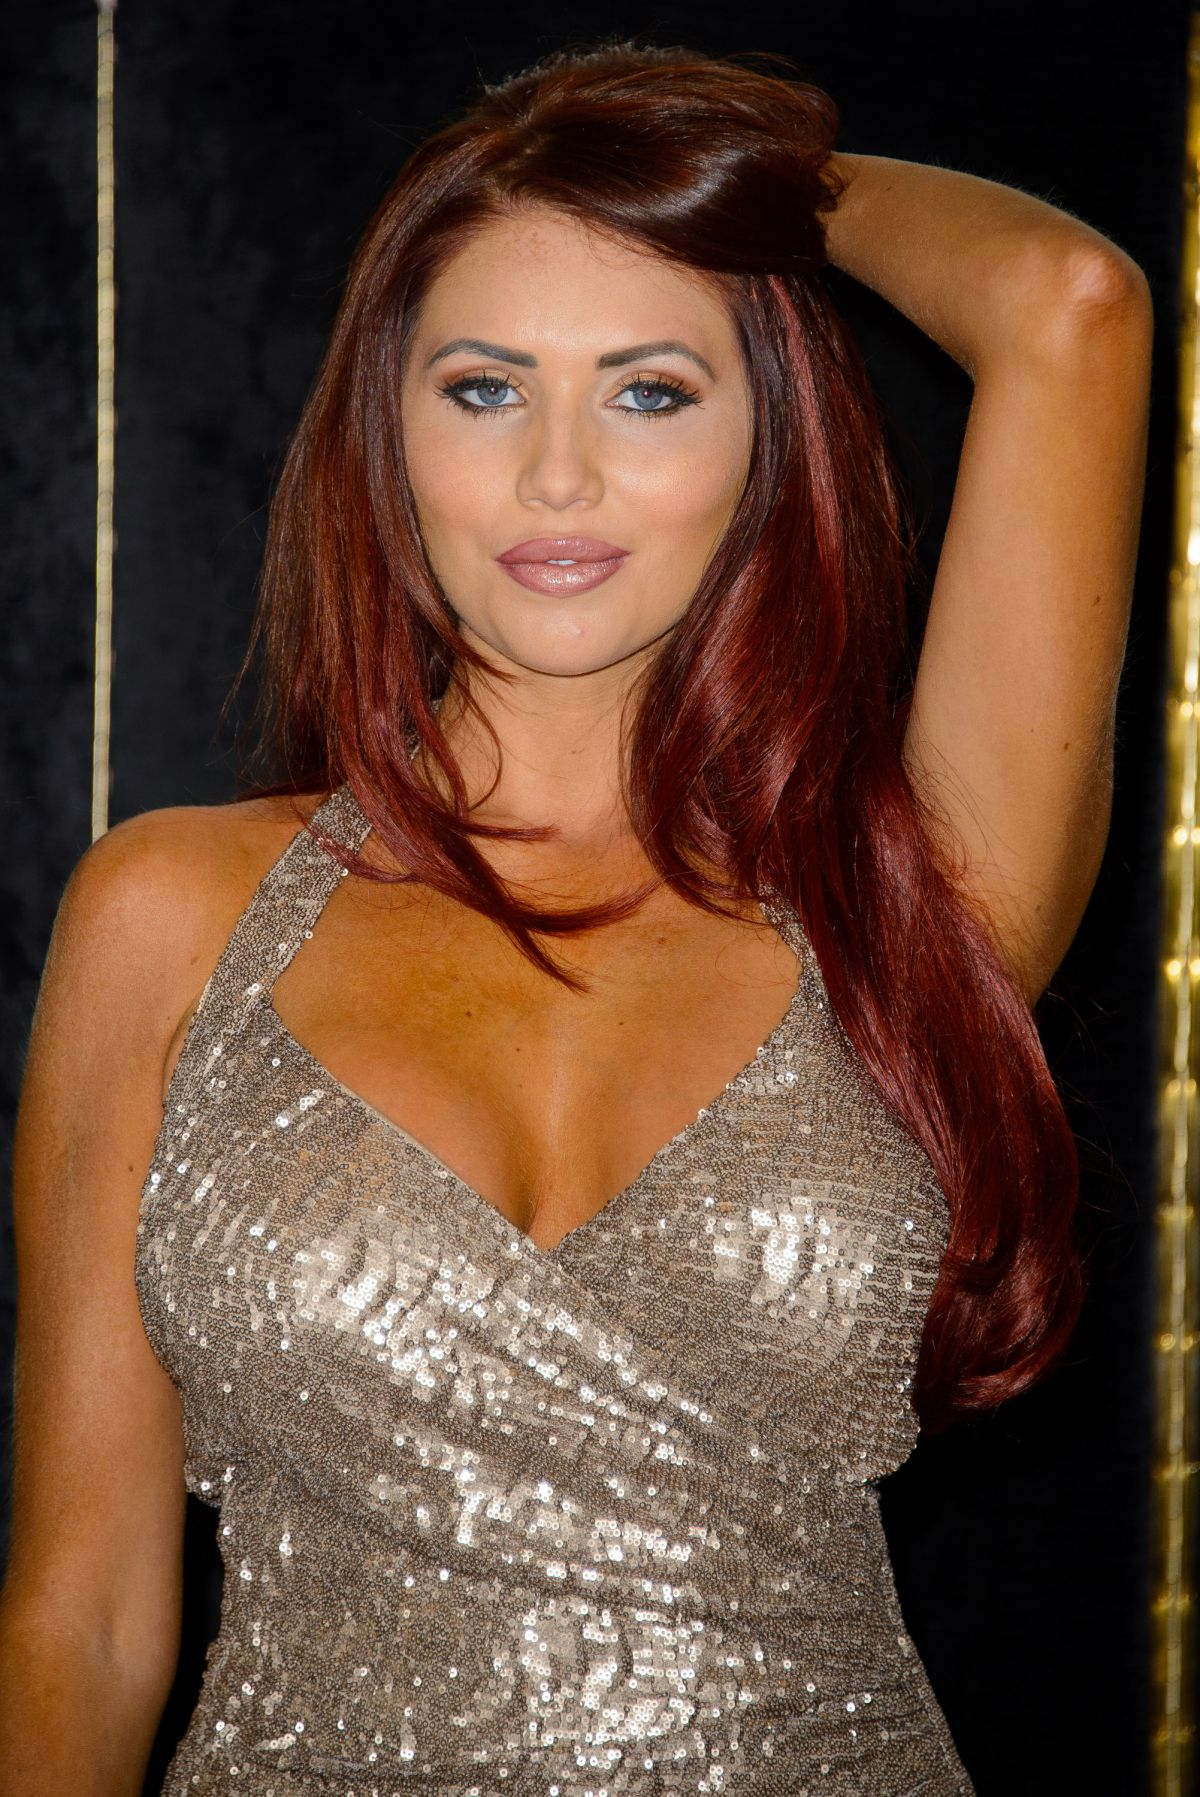 Amy Childs At Launch Of Her Clothing Line In London